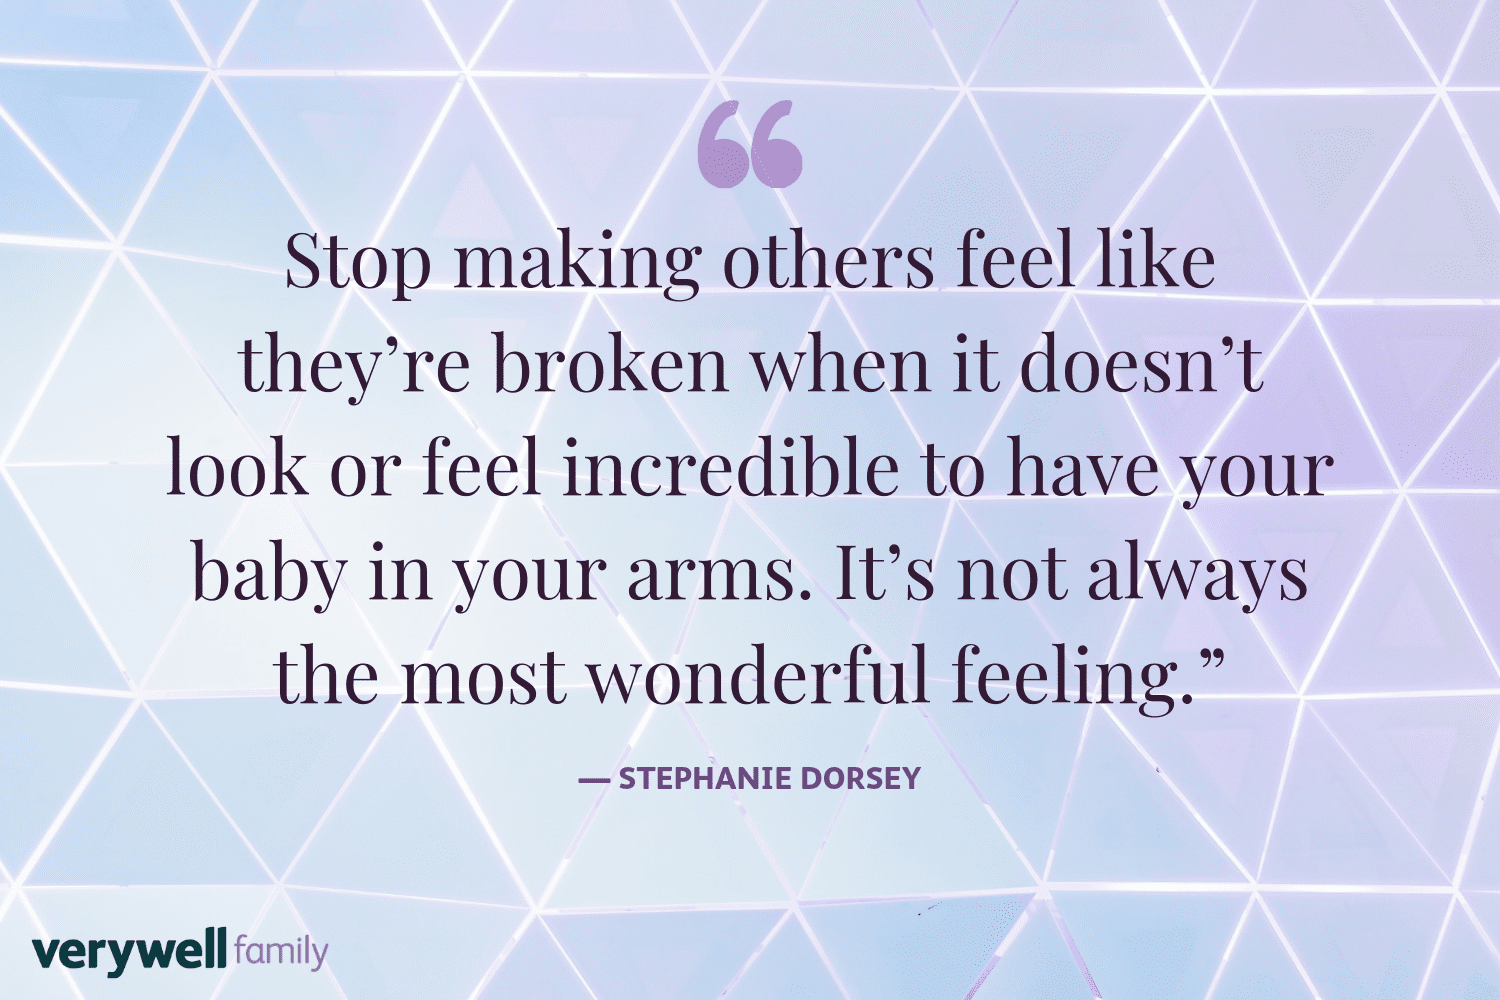 Verywell Family postpartum quote by Stephanie Dorsey